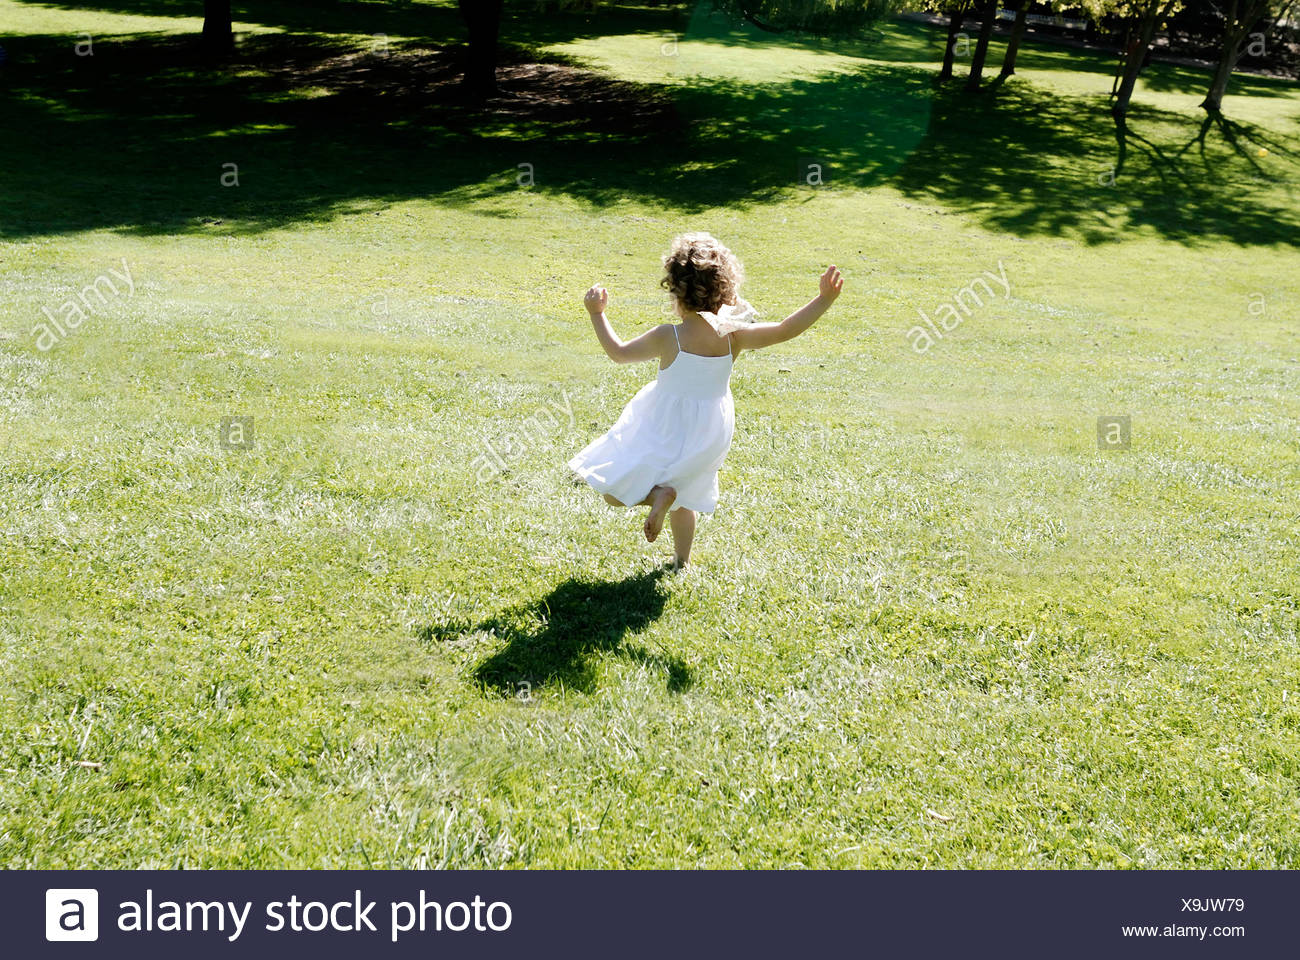 3 years old girl running in a field - Stock Image